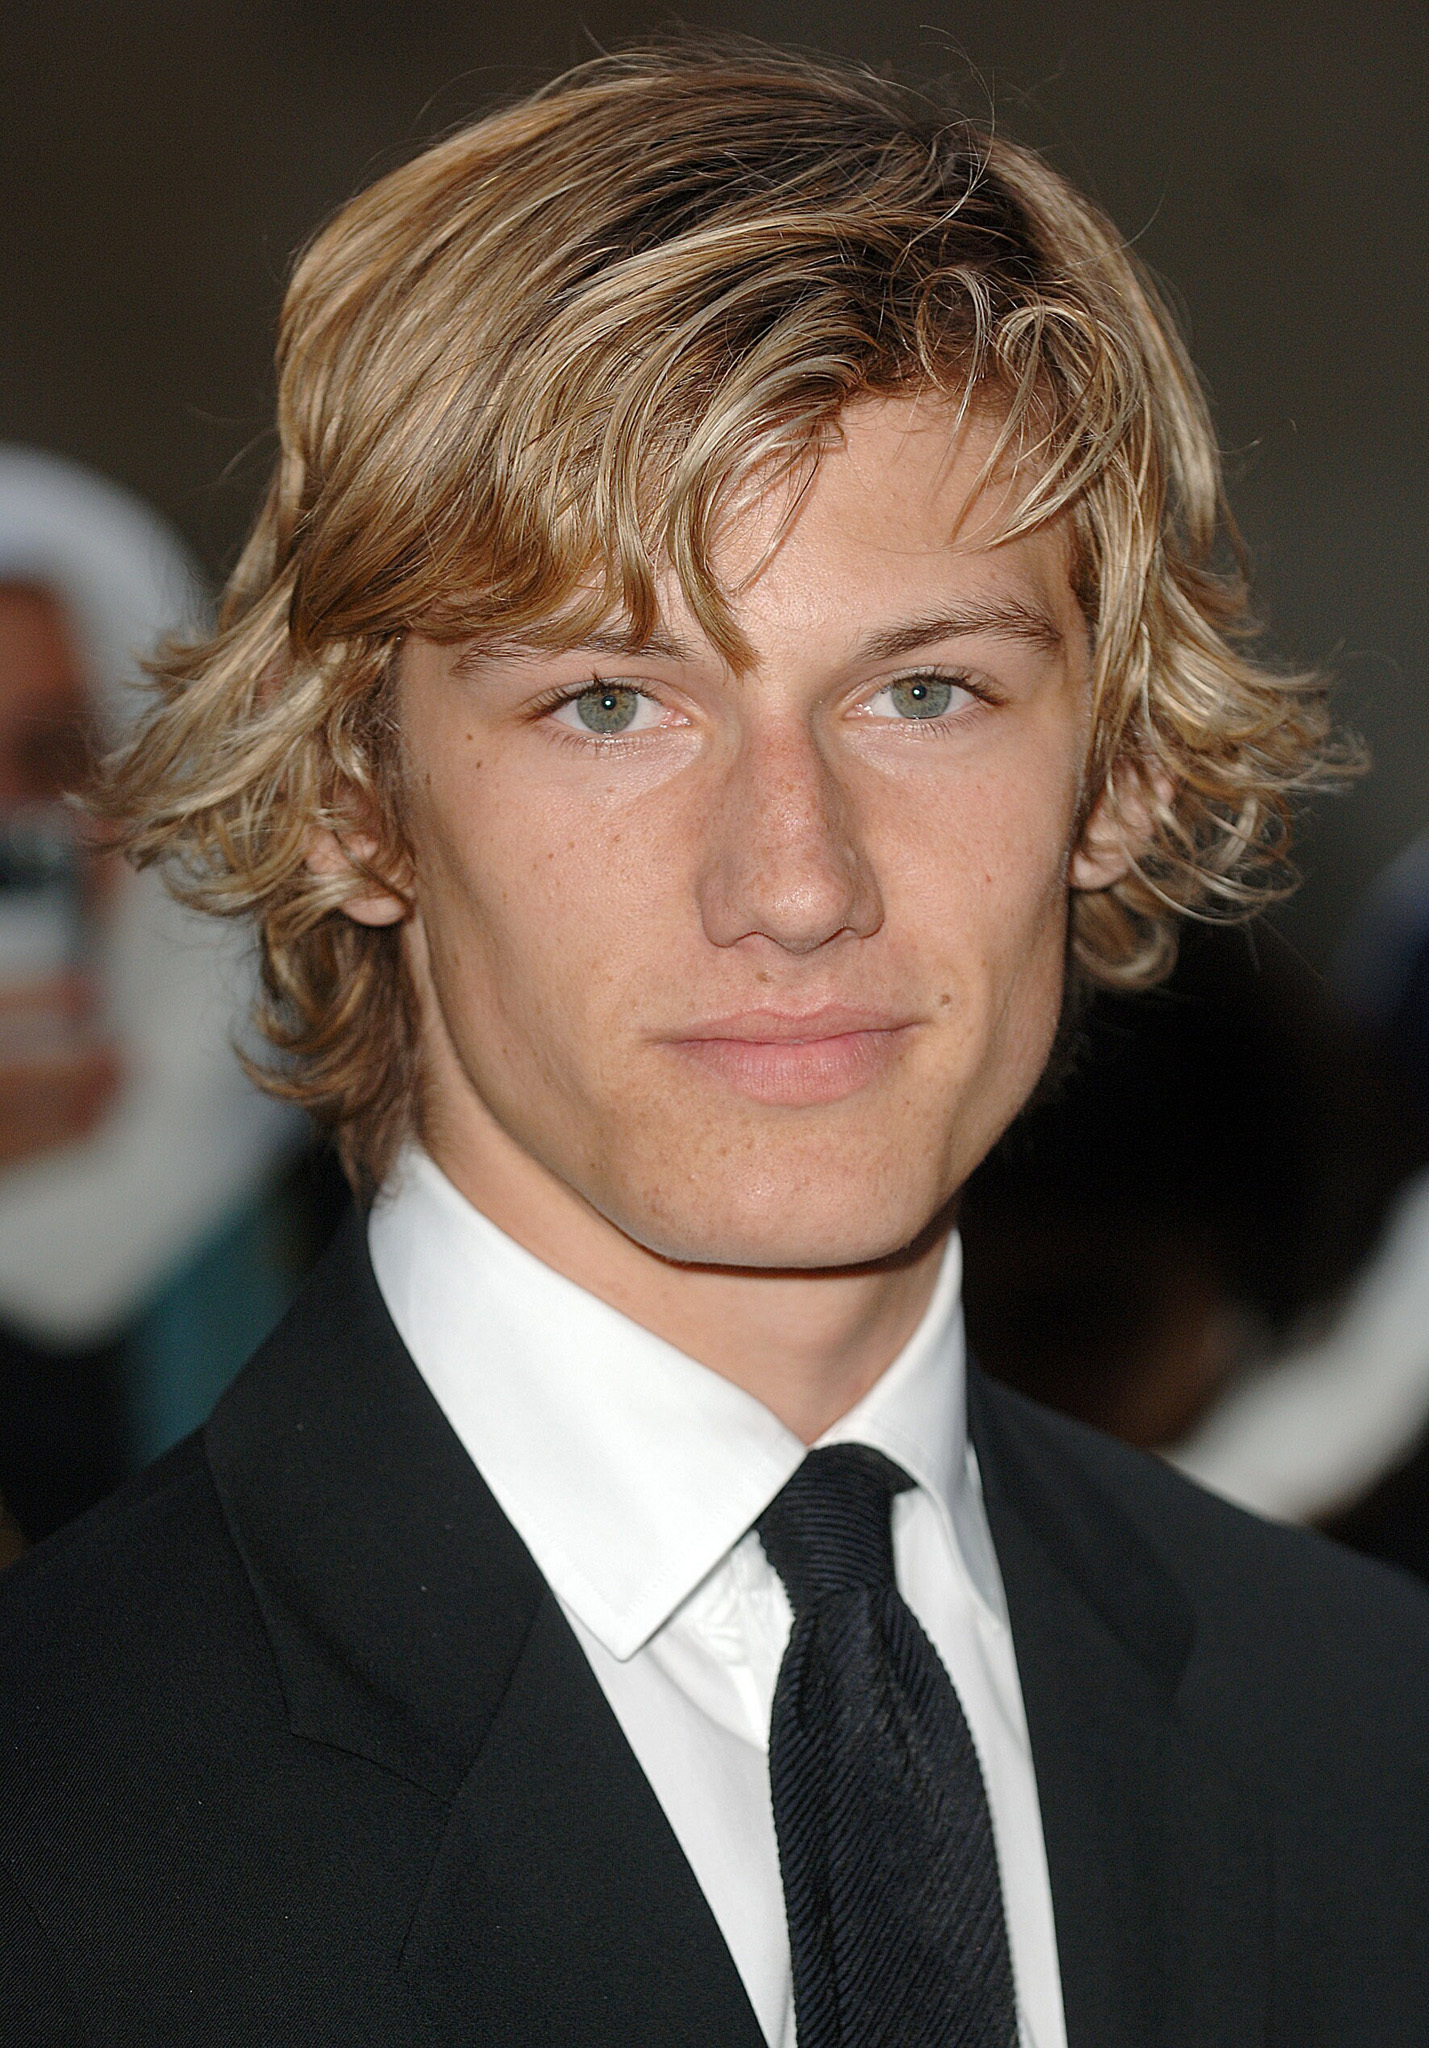 Alex Pettyfer Wallpapers High Quality Download Free